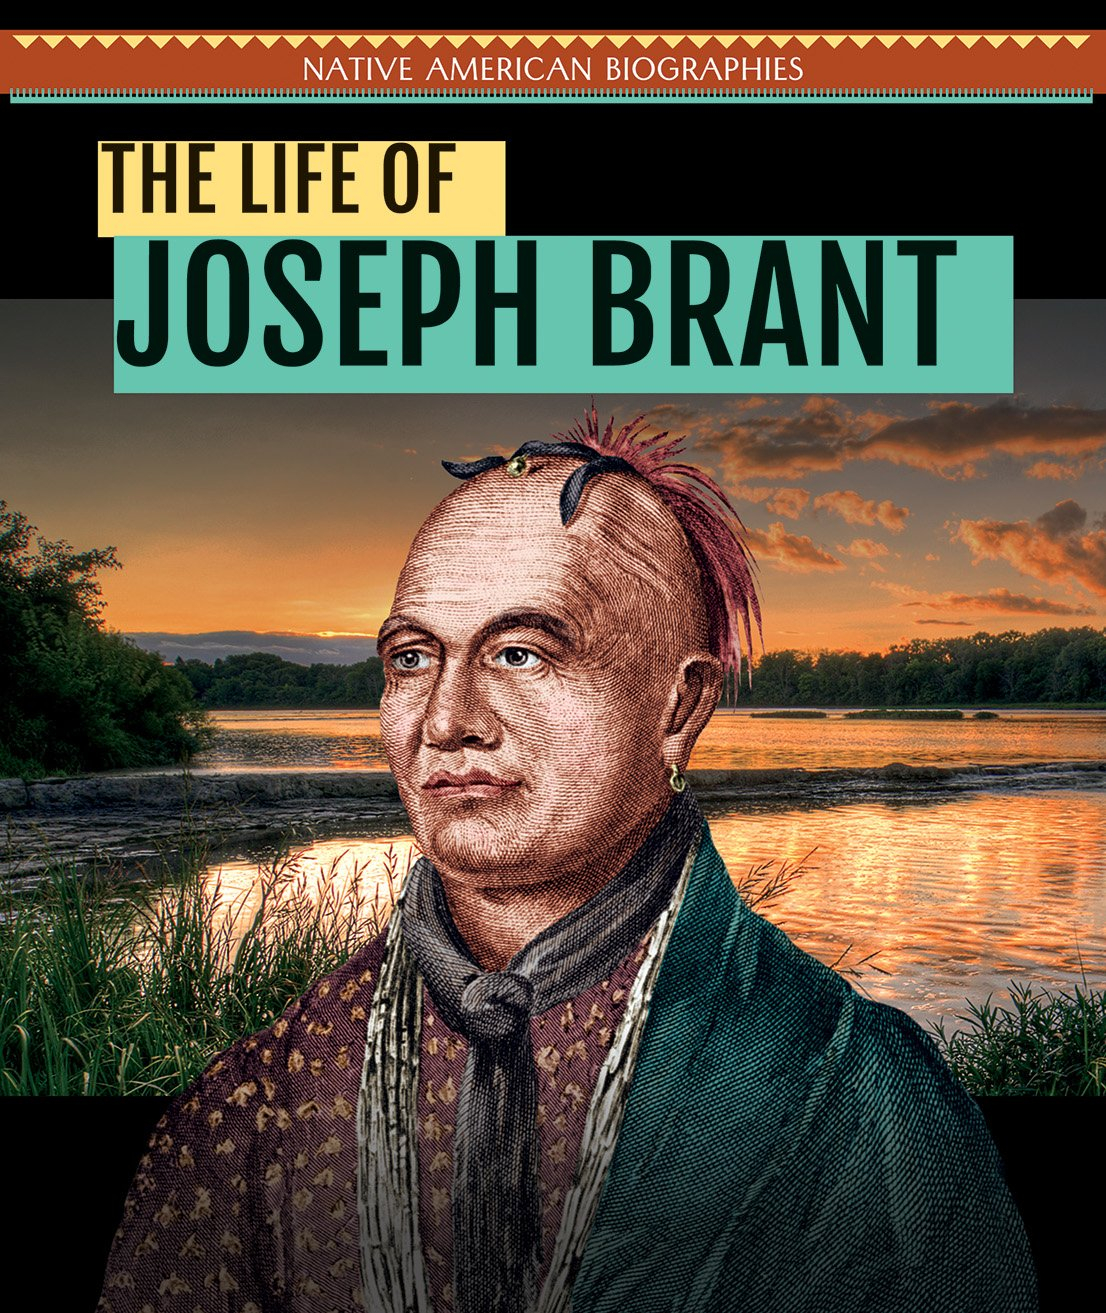 The Life of Joseph Brant (Native American Biographies)